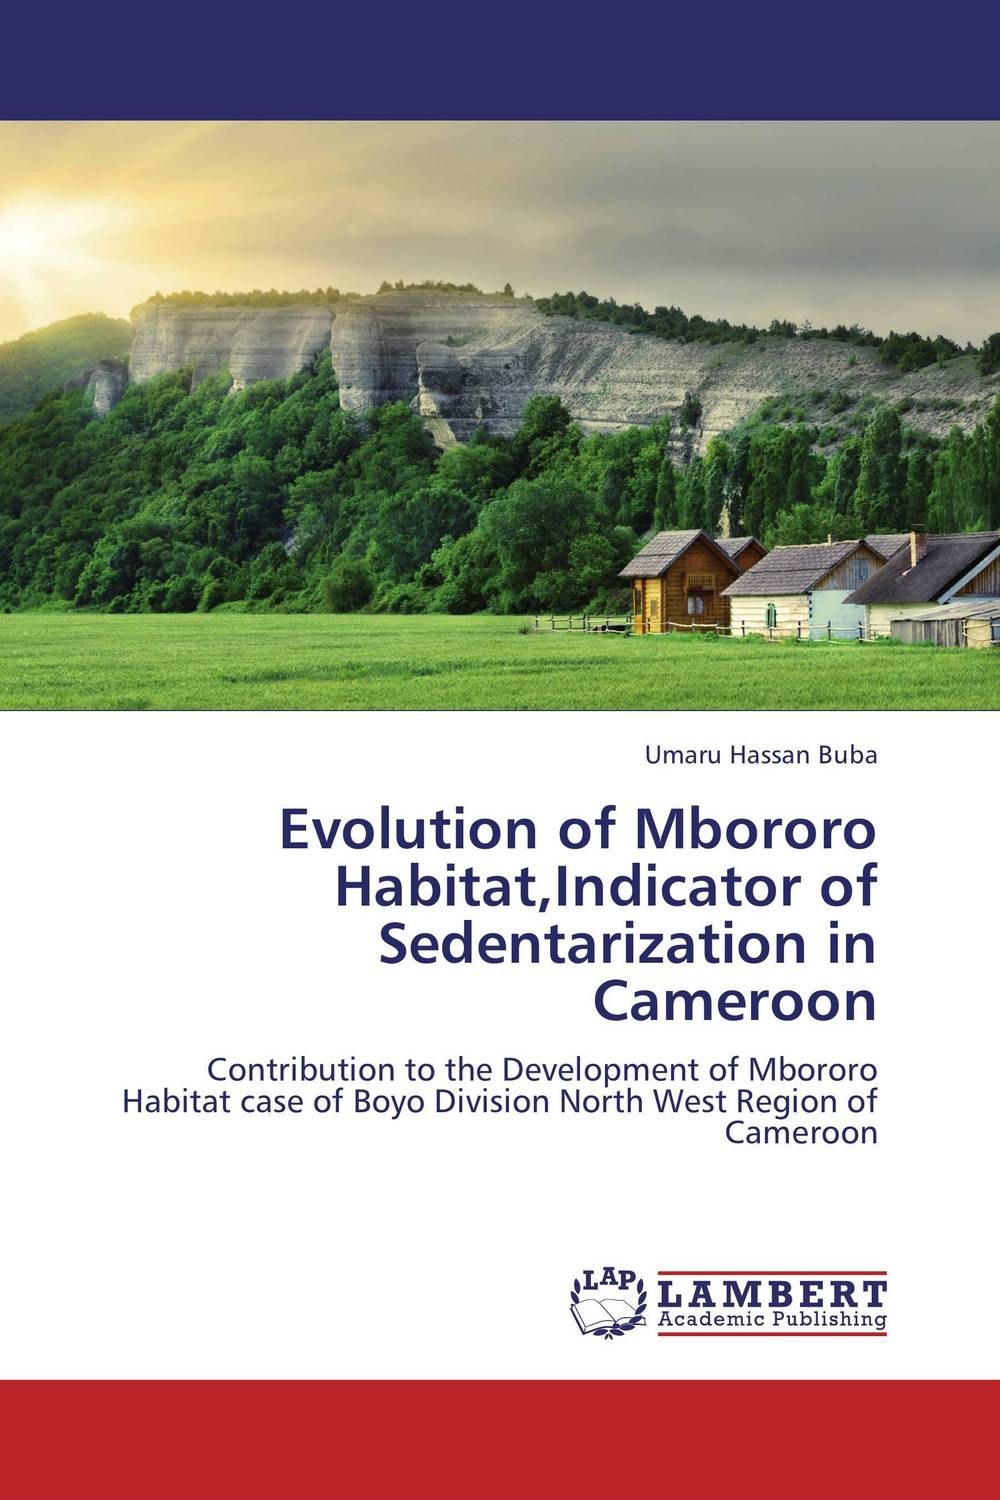 Evolution of Mbororo Habitat,Indicator of Sedentarization in Cameroon robots in space – technology evolution and interplanetary travel